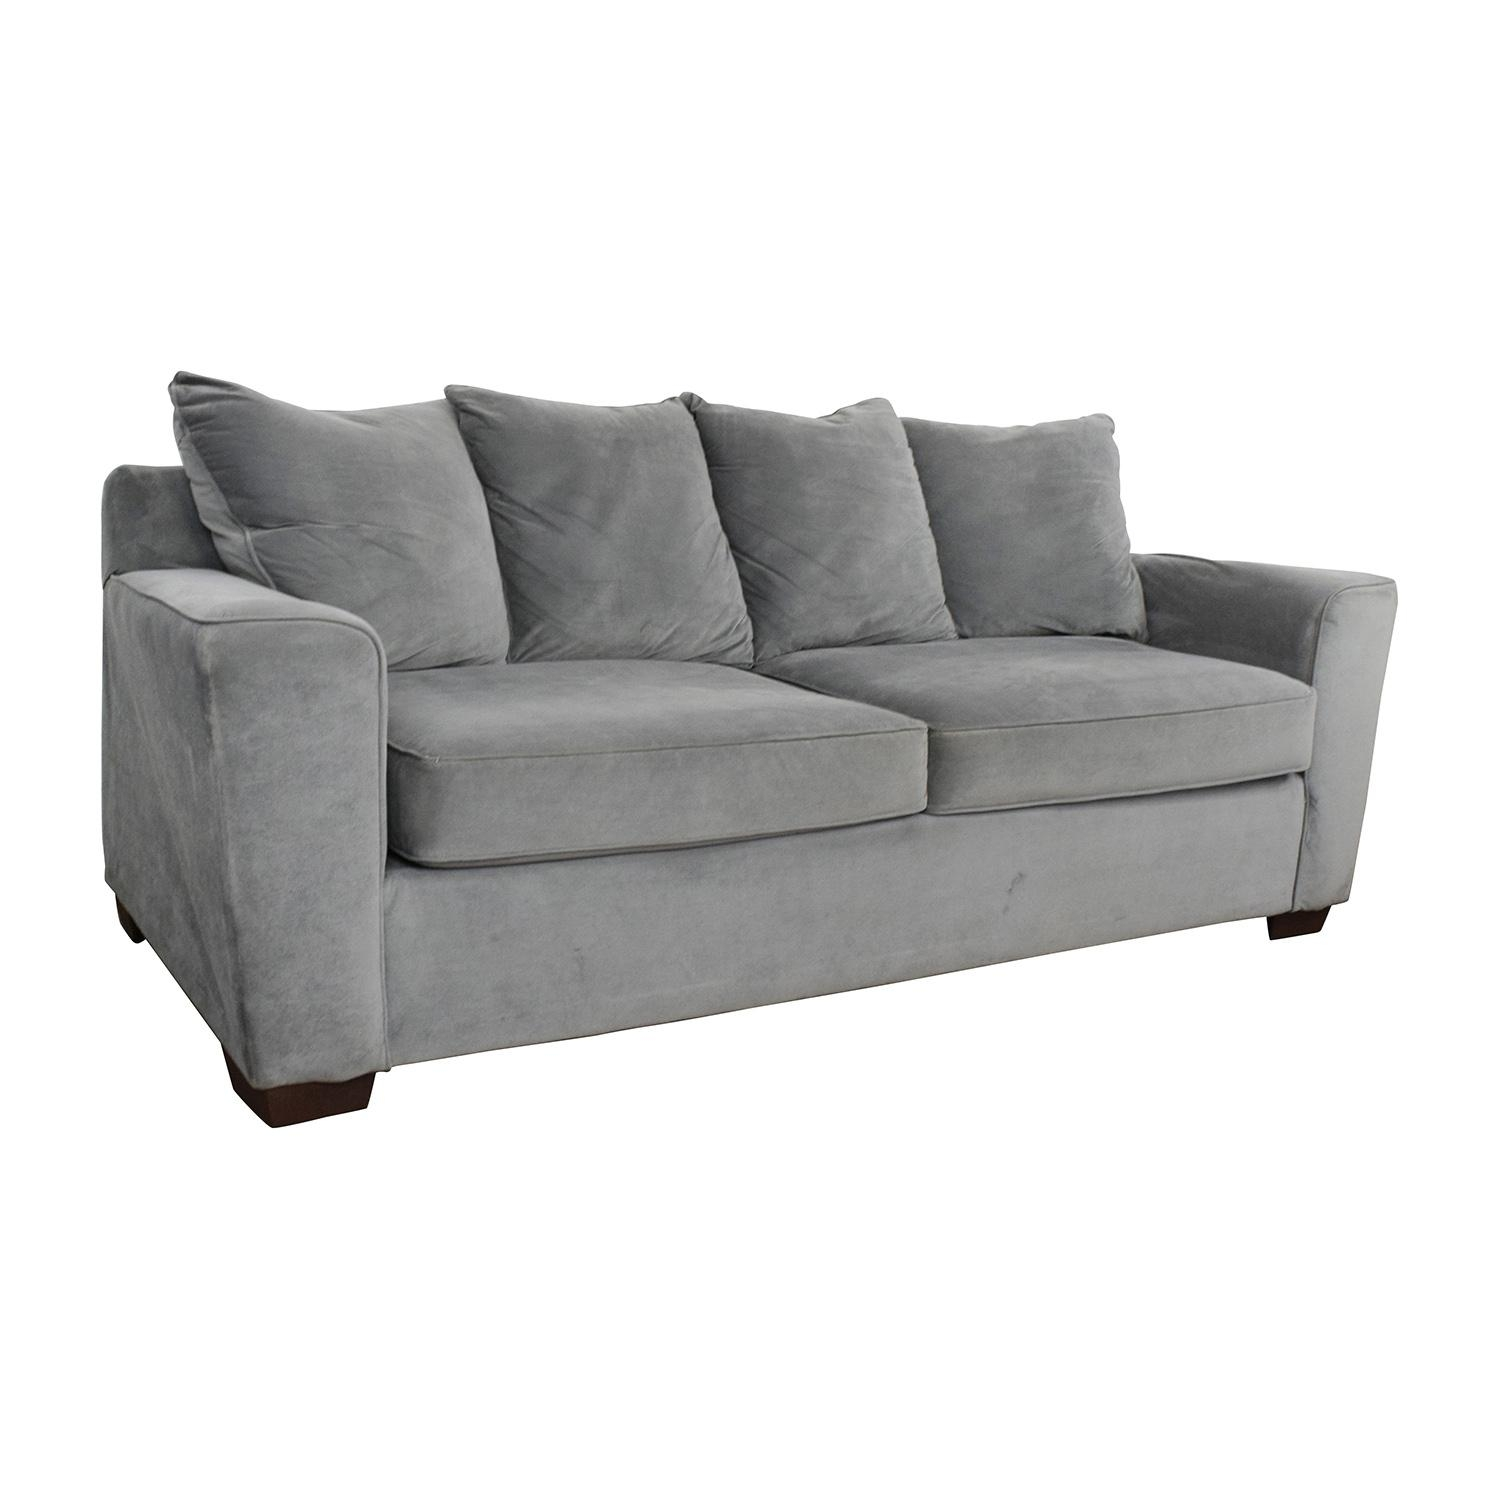 57% Off – Jennifer Convertibles Jennifer Convertibles Grey Couch Intended For Jennifer Sofas (Image 3 of 20)